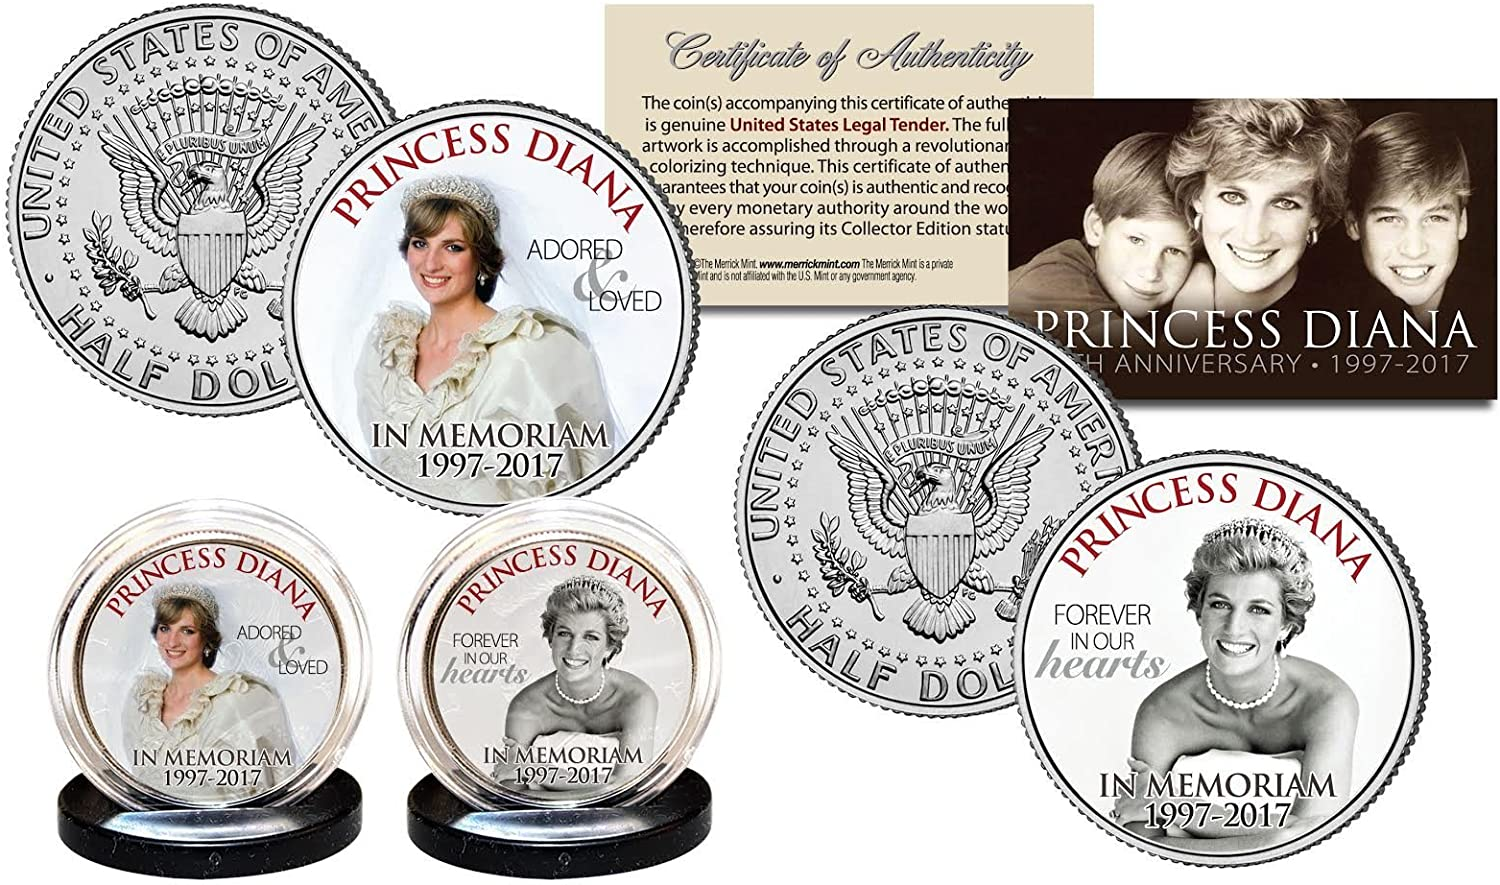 BRITISH MONARCHY Princess Diana /& Royal Family THEN /& NOW Official U.S $2 Bill